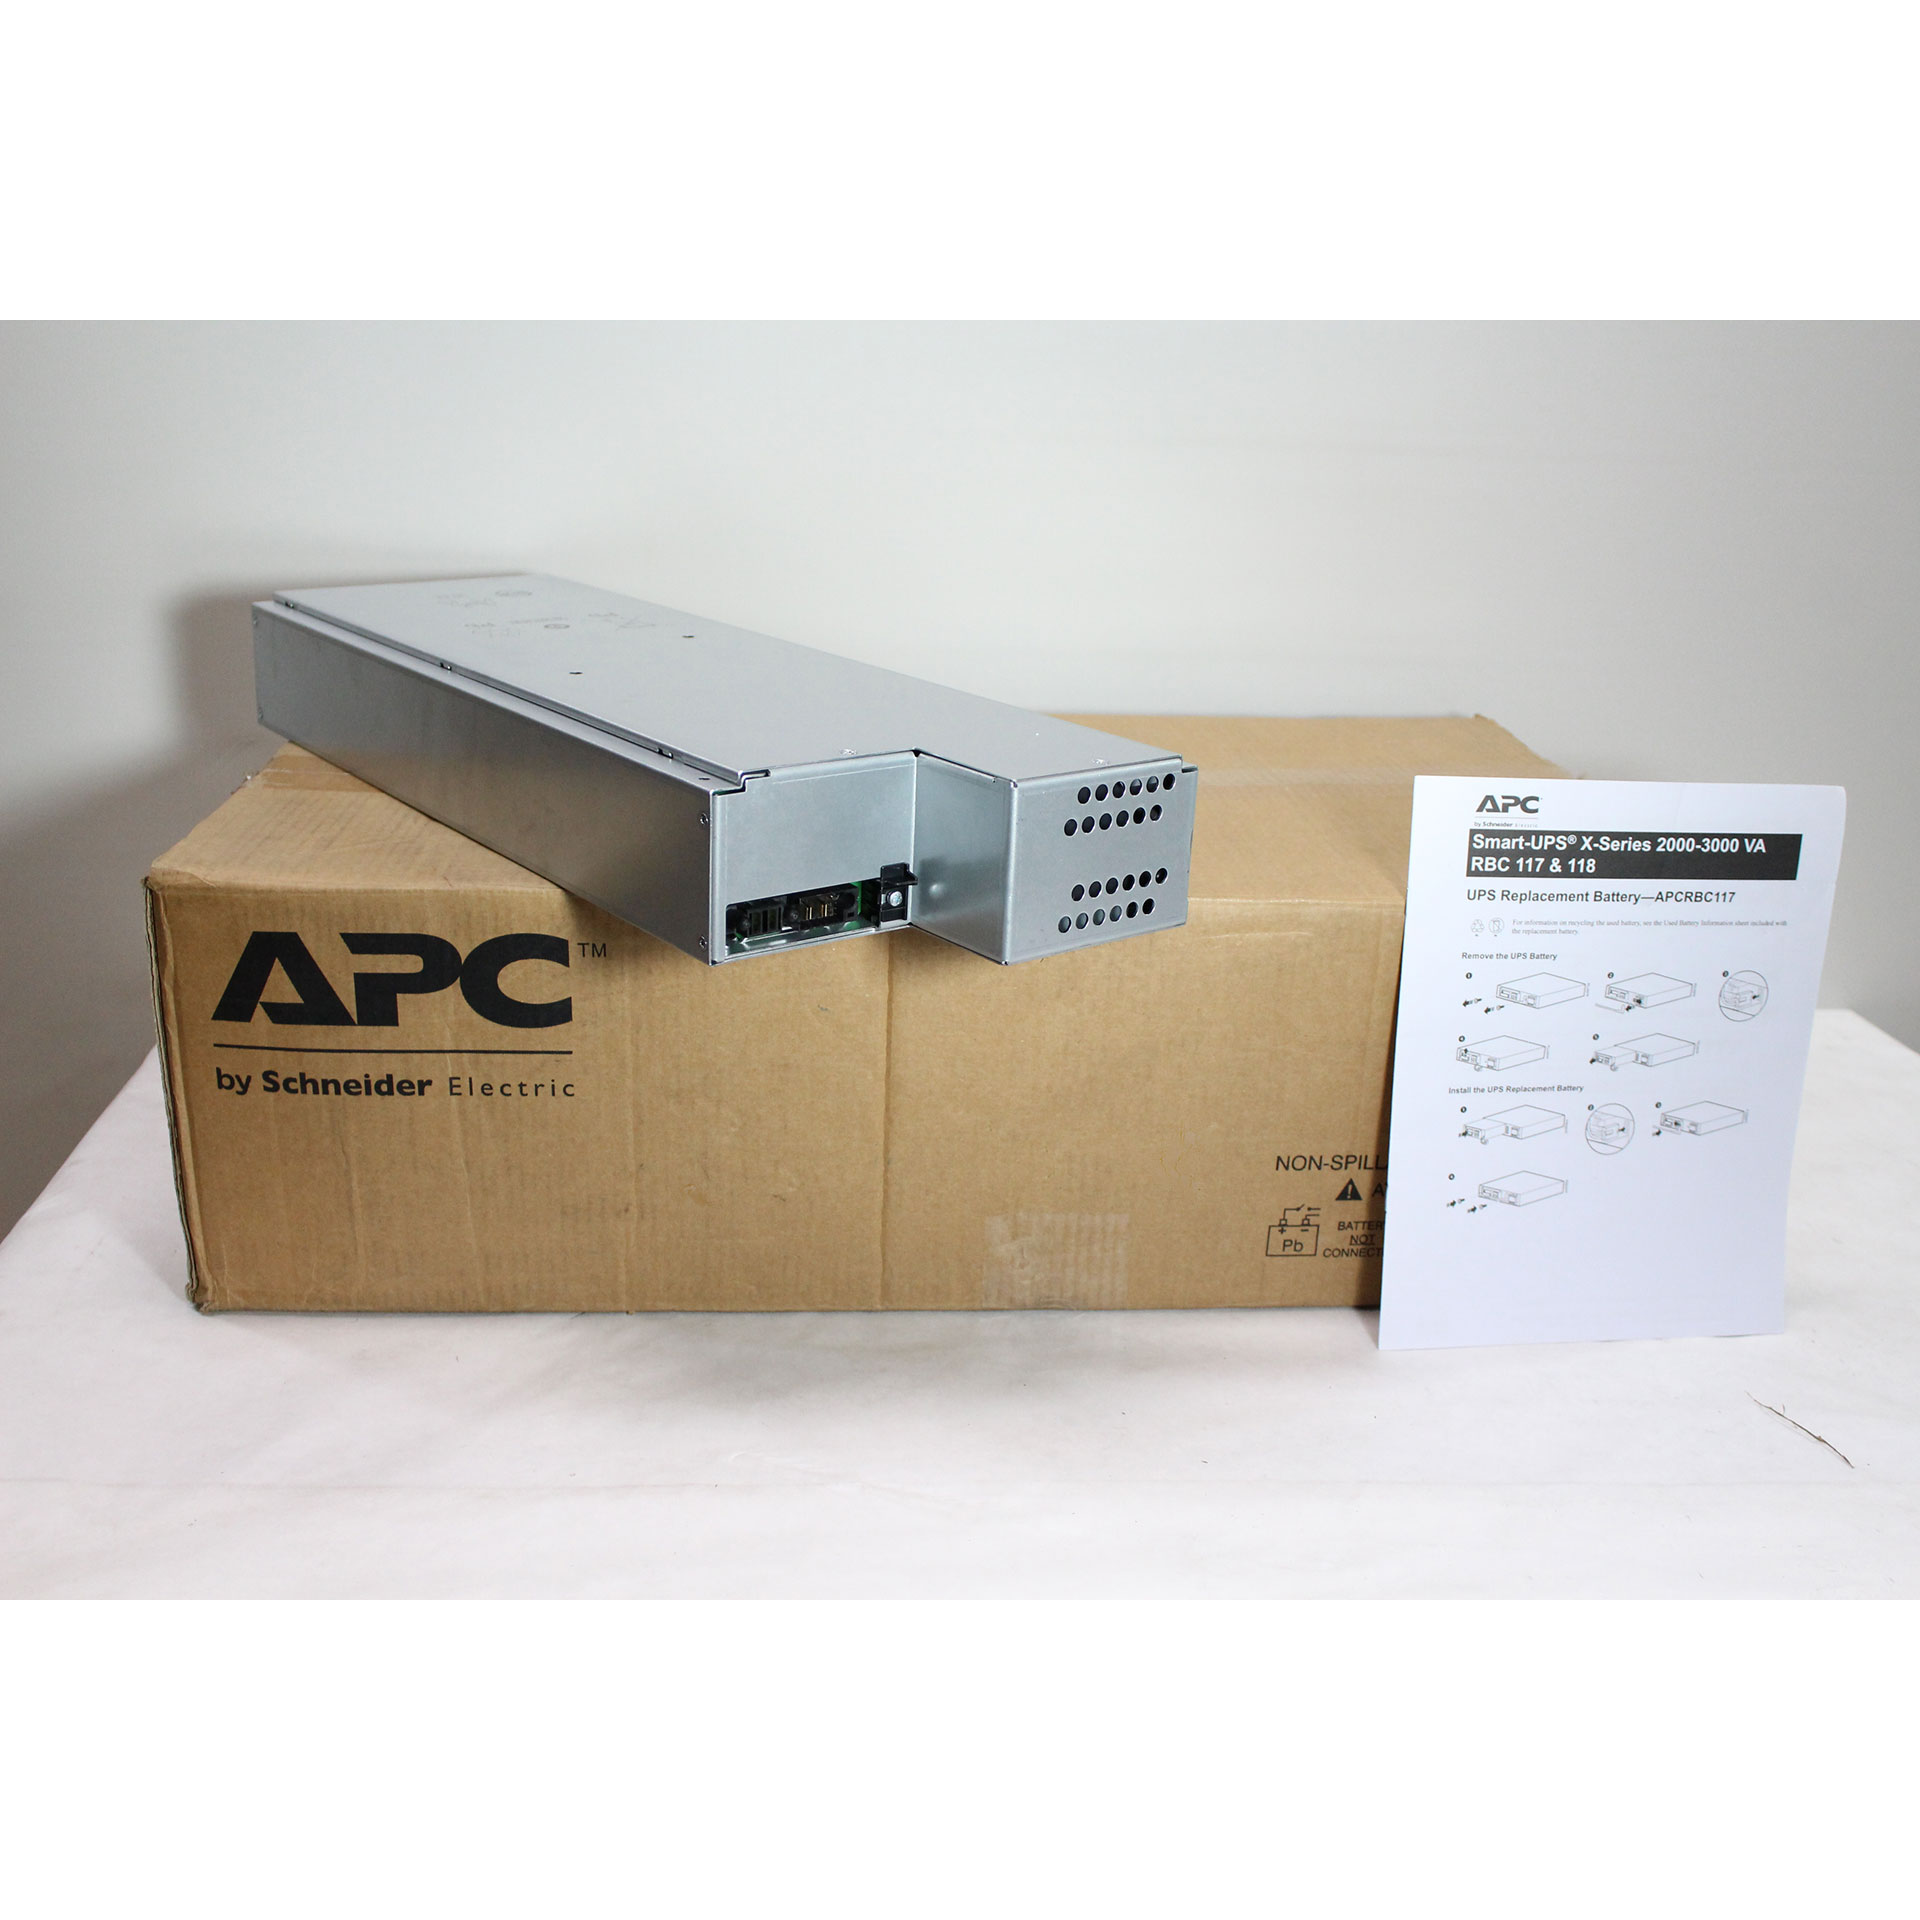 Genuine APC Replacement Battery Cartridge UPS Battery APCRBC118